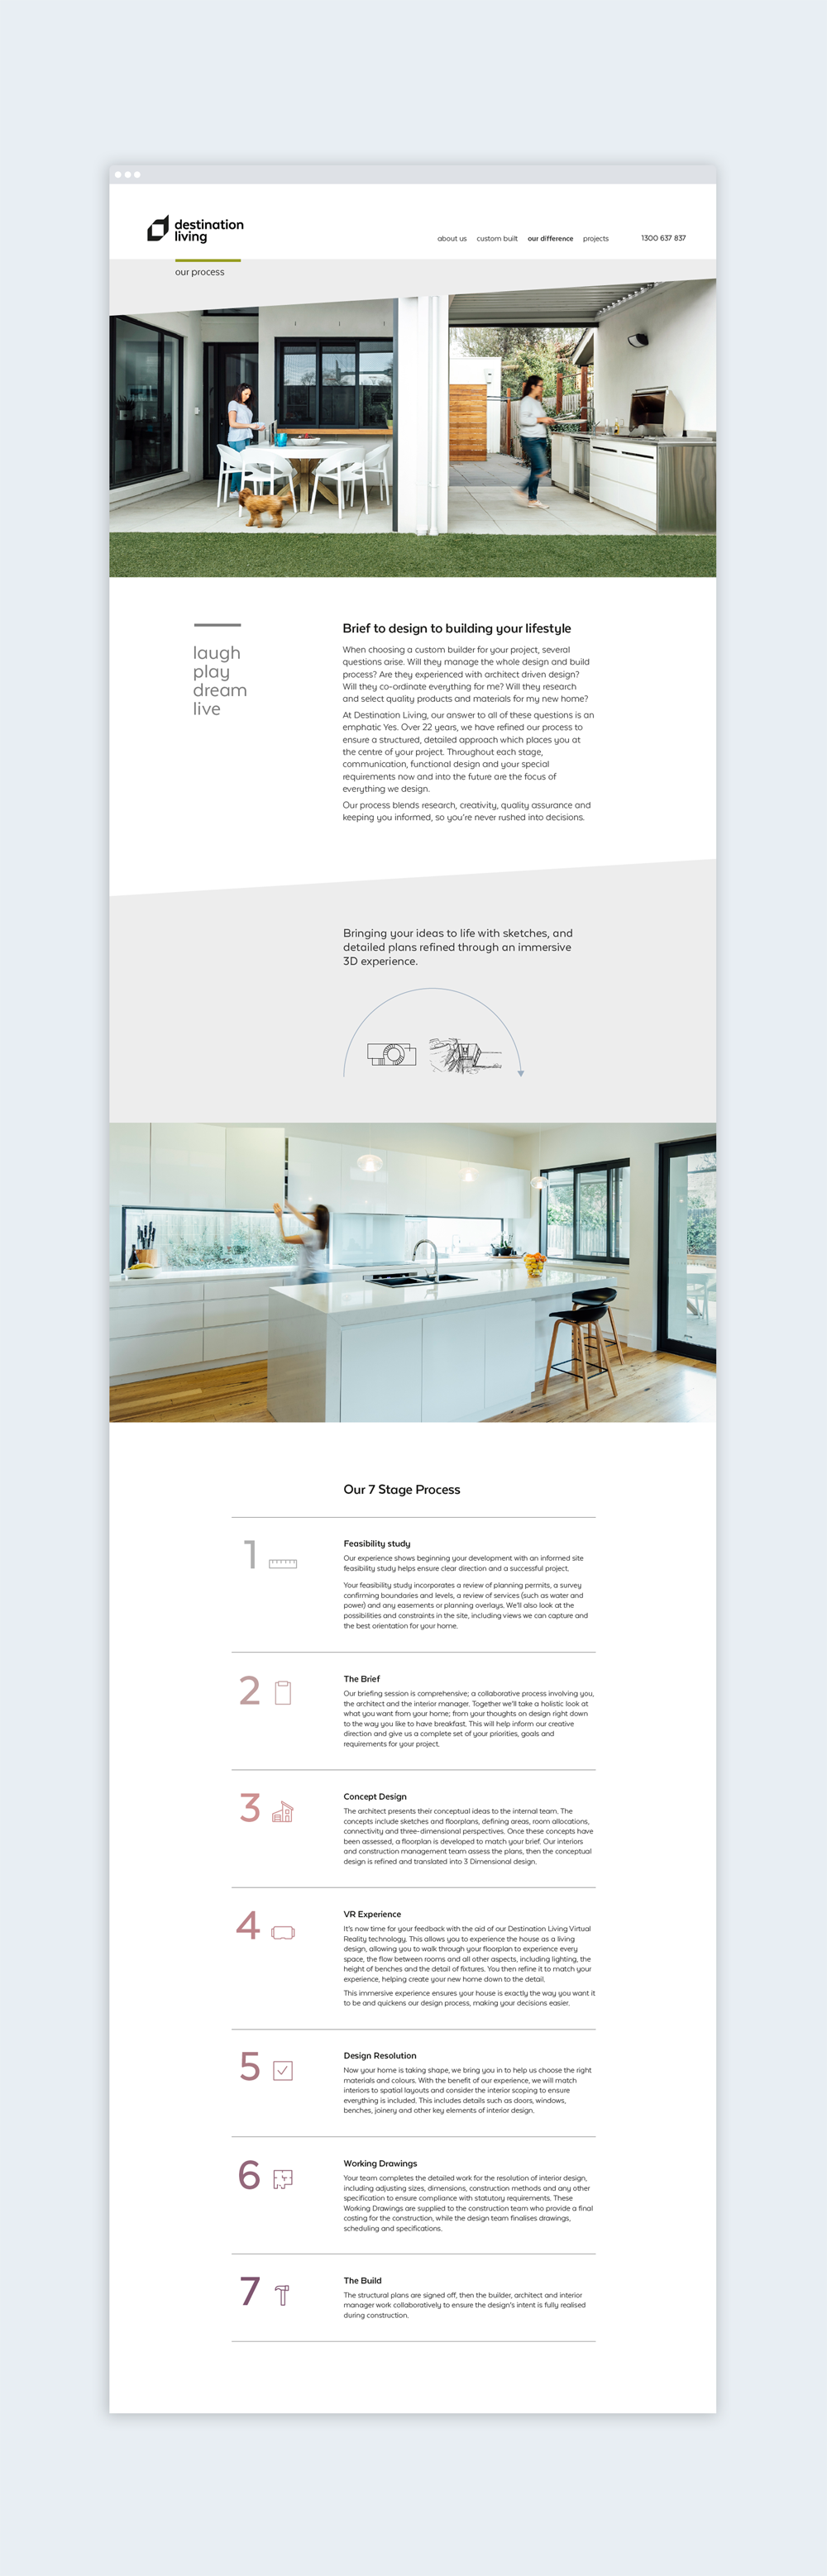 Destination living branding website